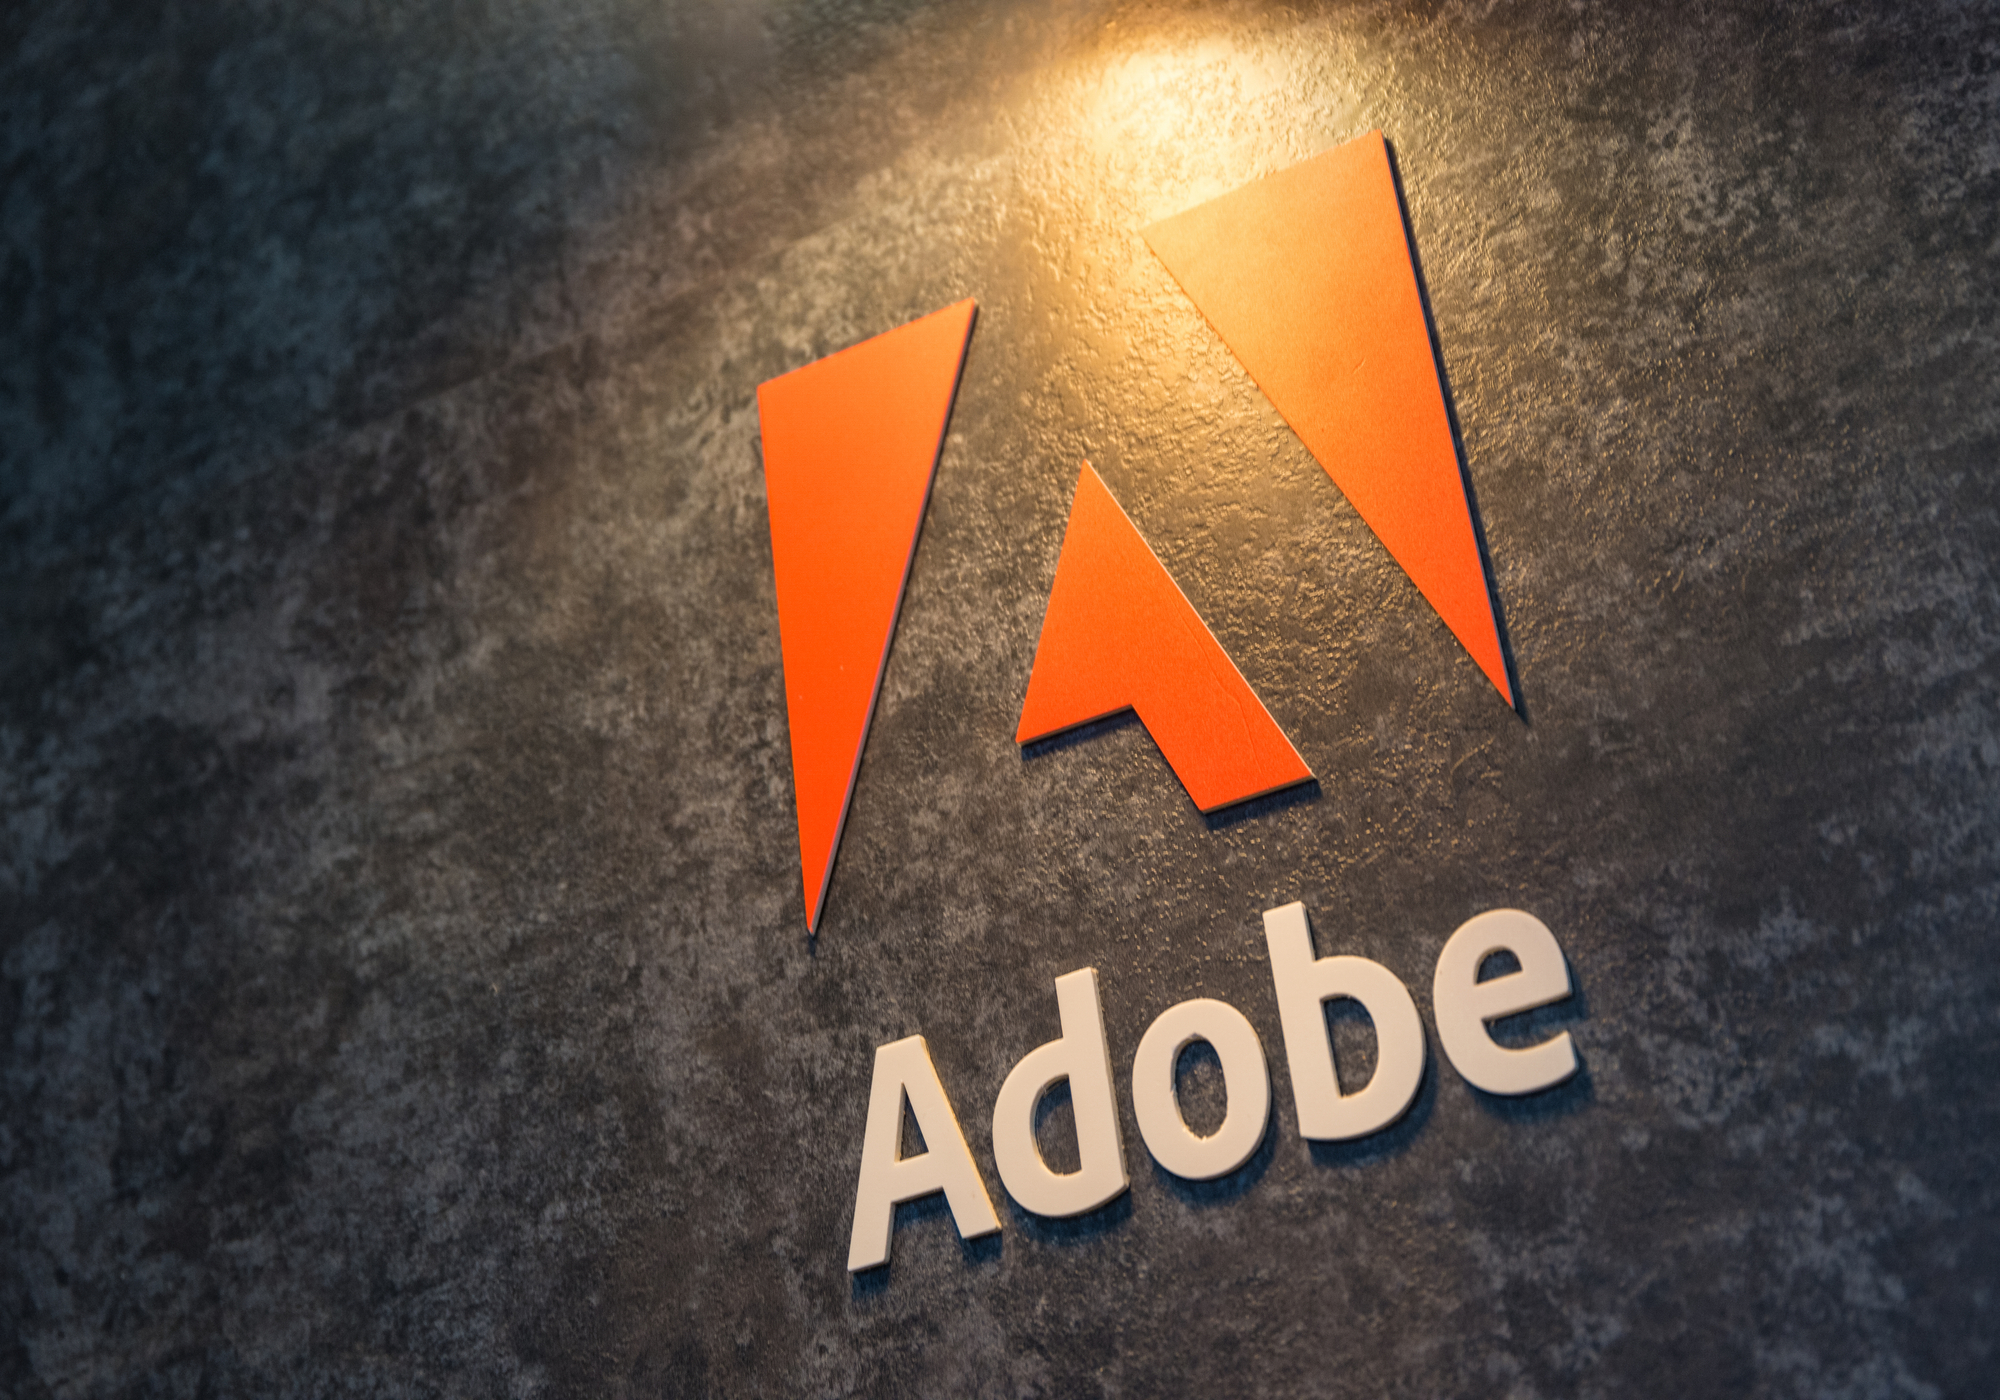 Adobe reports record Q3 revenue as subscriptions hit $3bn